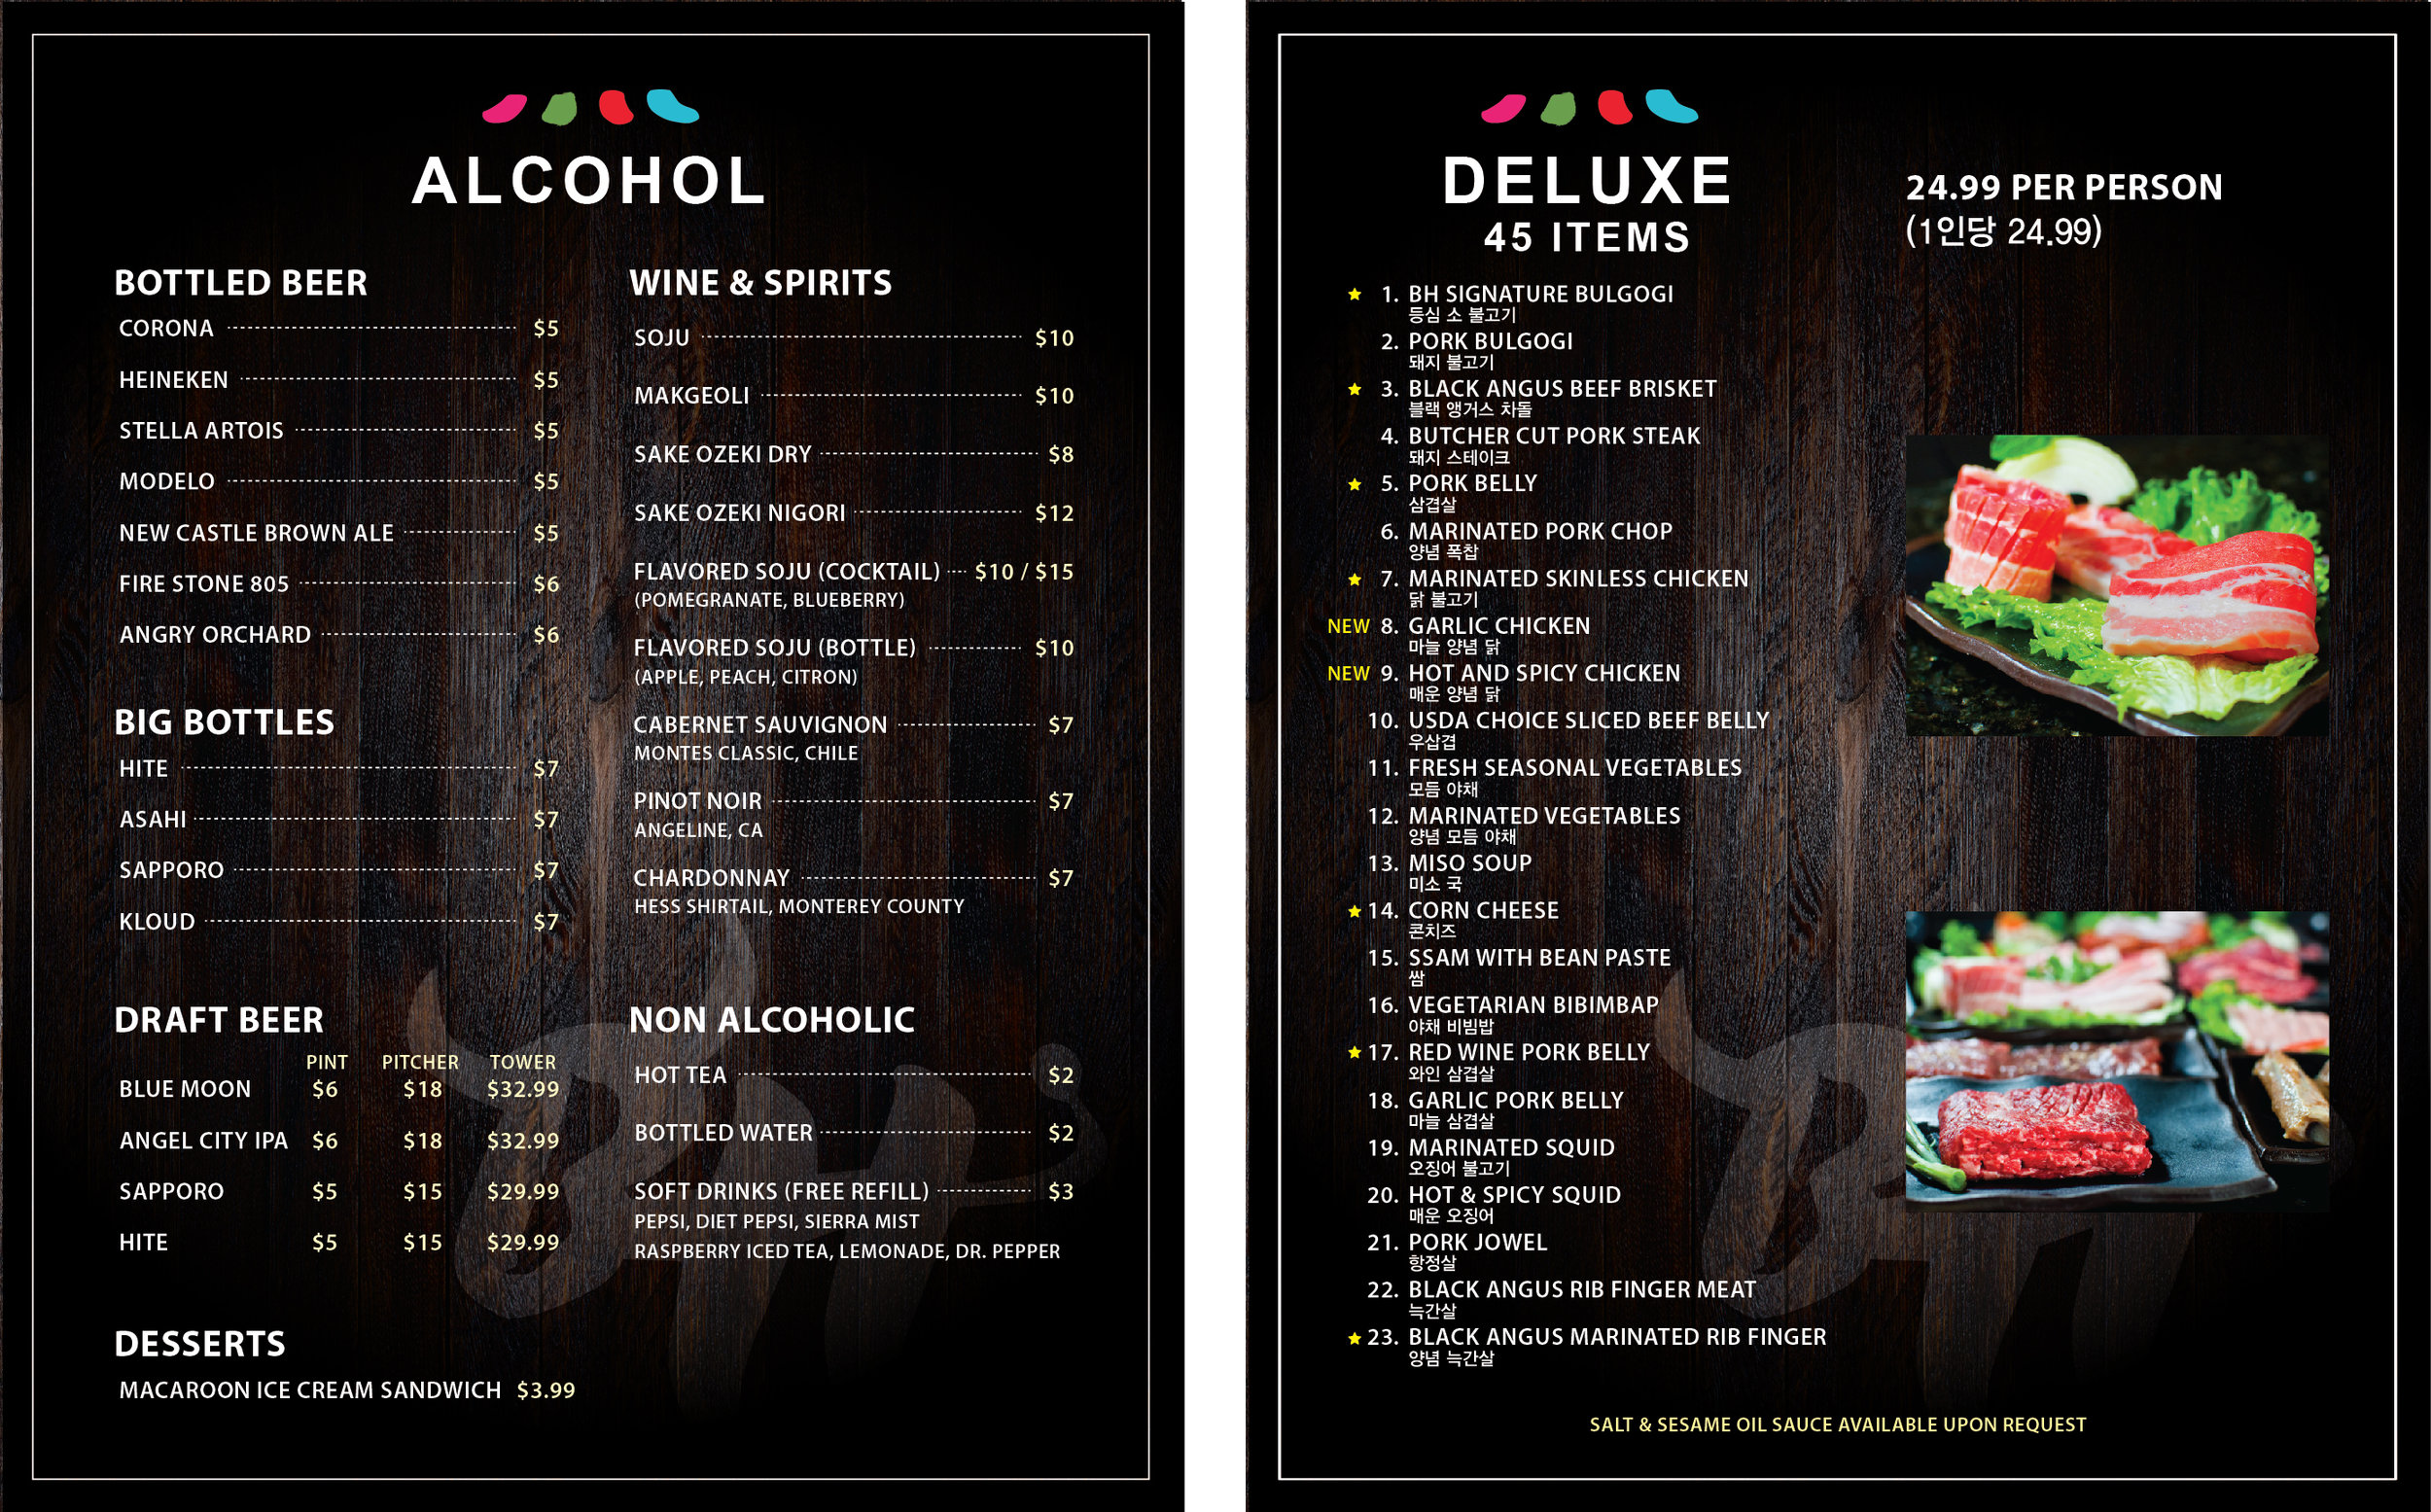 Alcohol Menu & Deluxe Page1.jpg